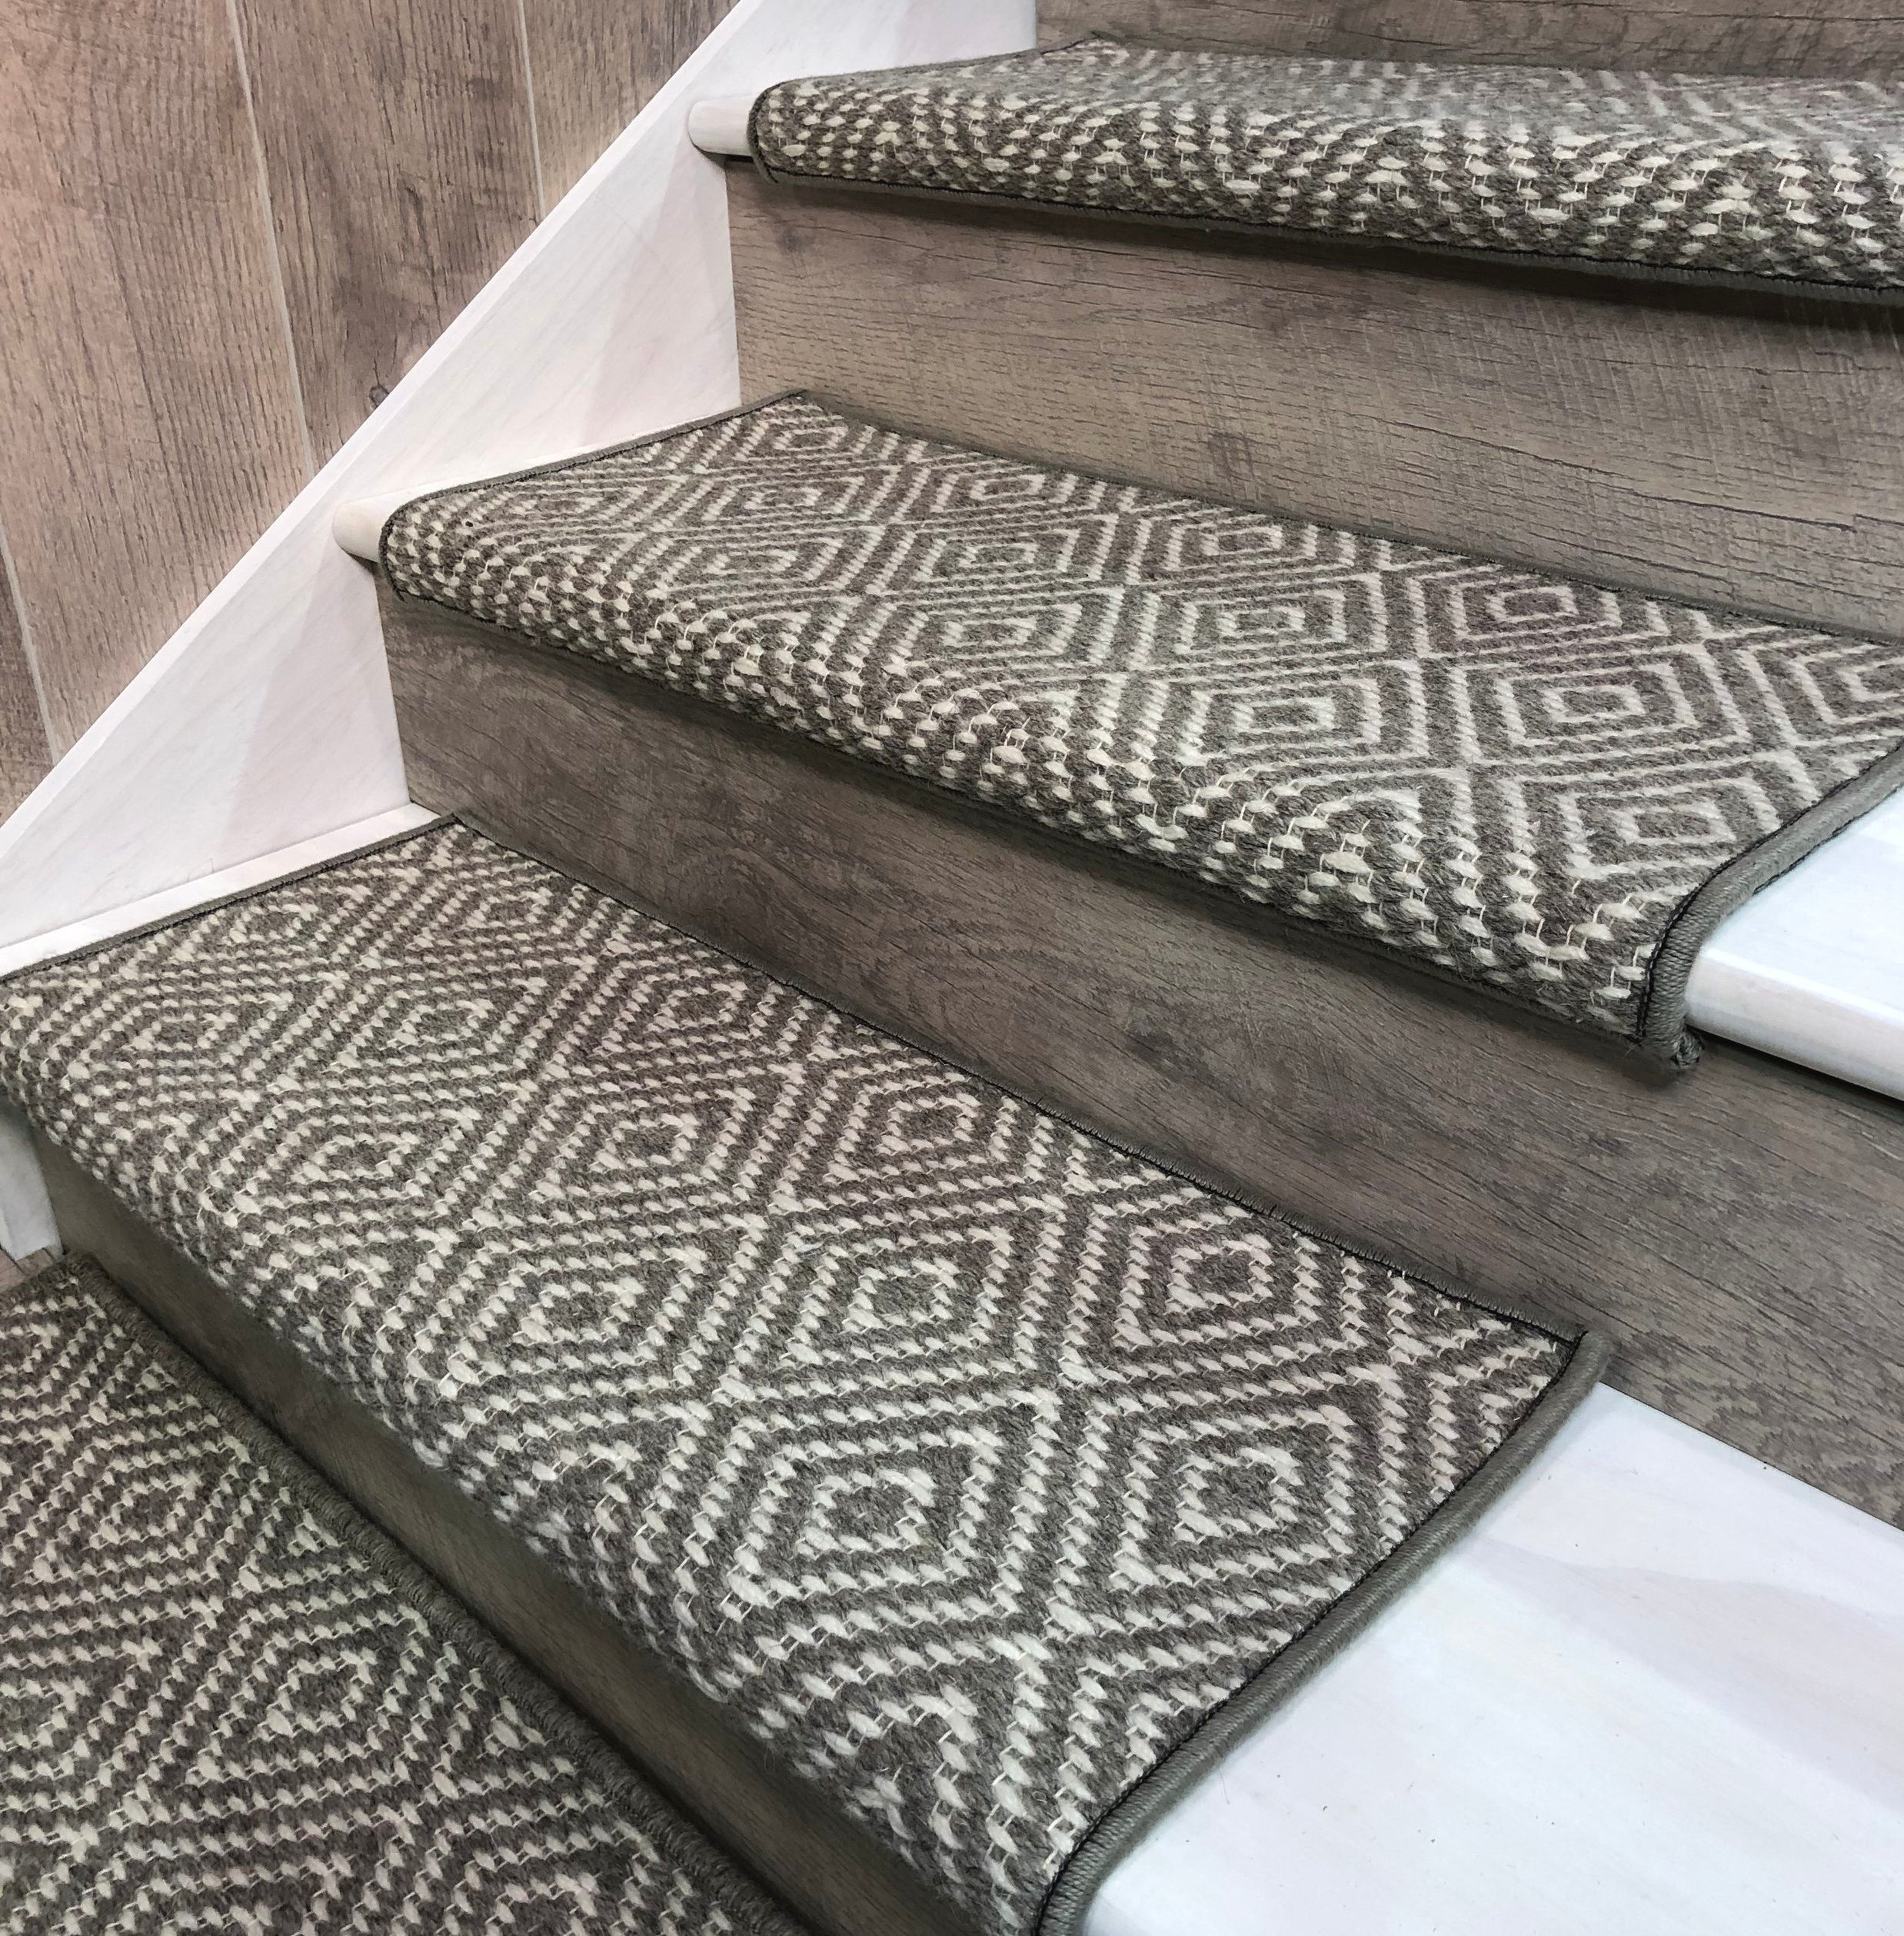 Stair Tread Shapes   Stair Treads For Carpeted Steps   Carpet Protectors   Skid Resistant   Bullnose Carpet   Anti Slip Stair   Wood